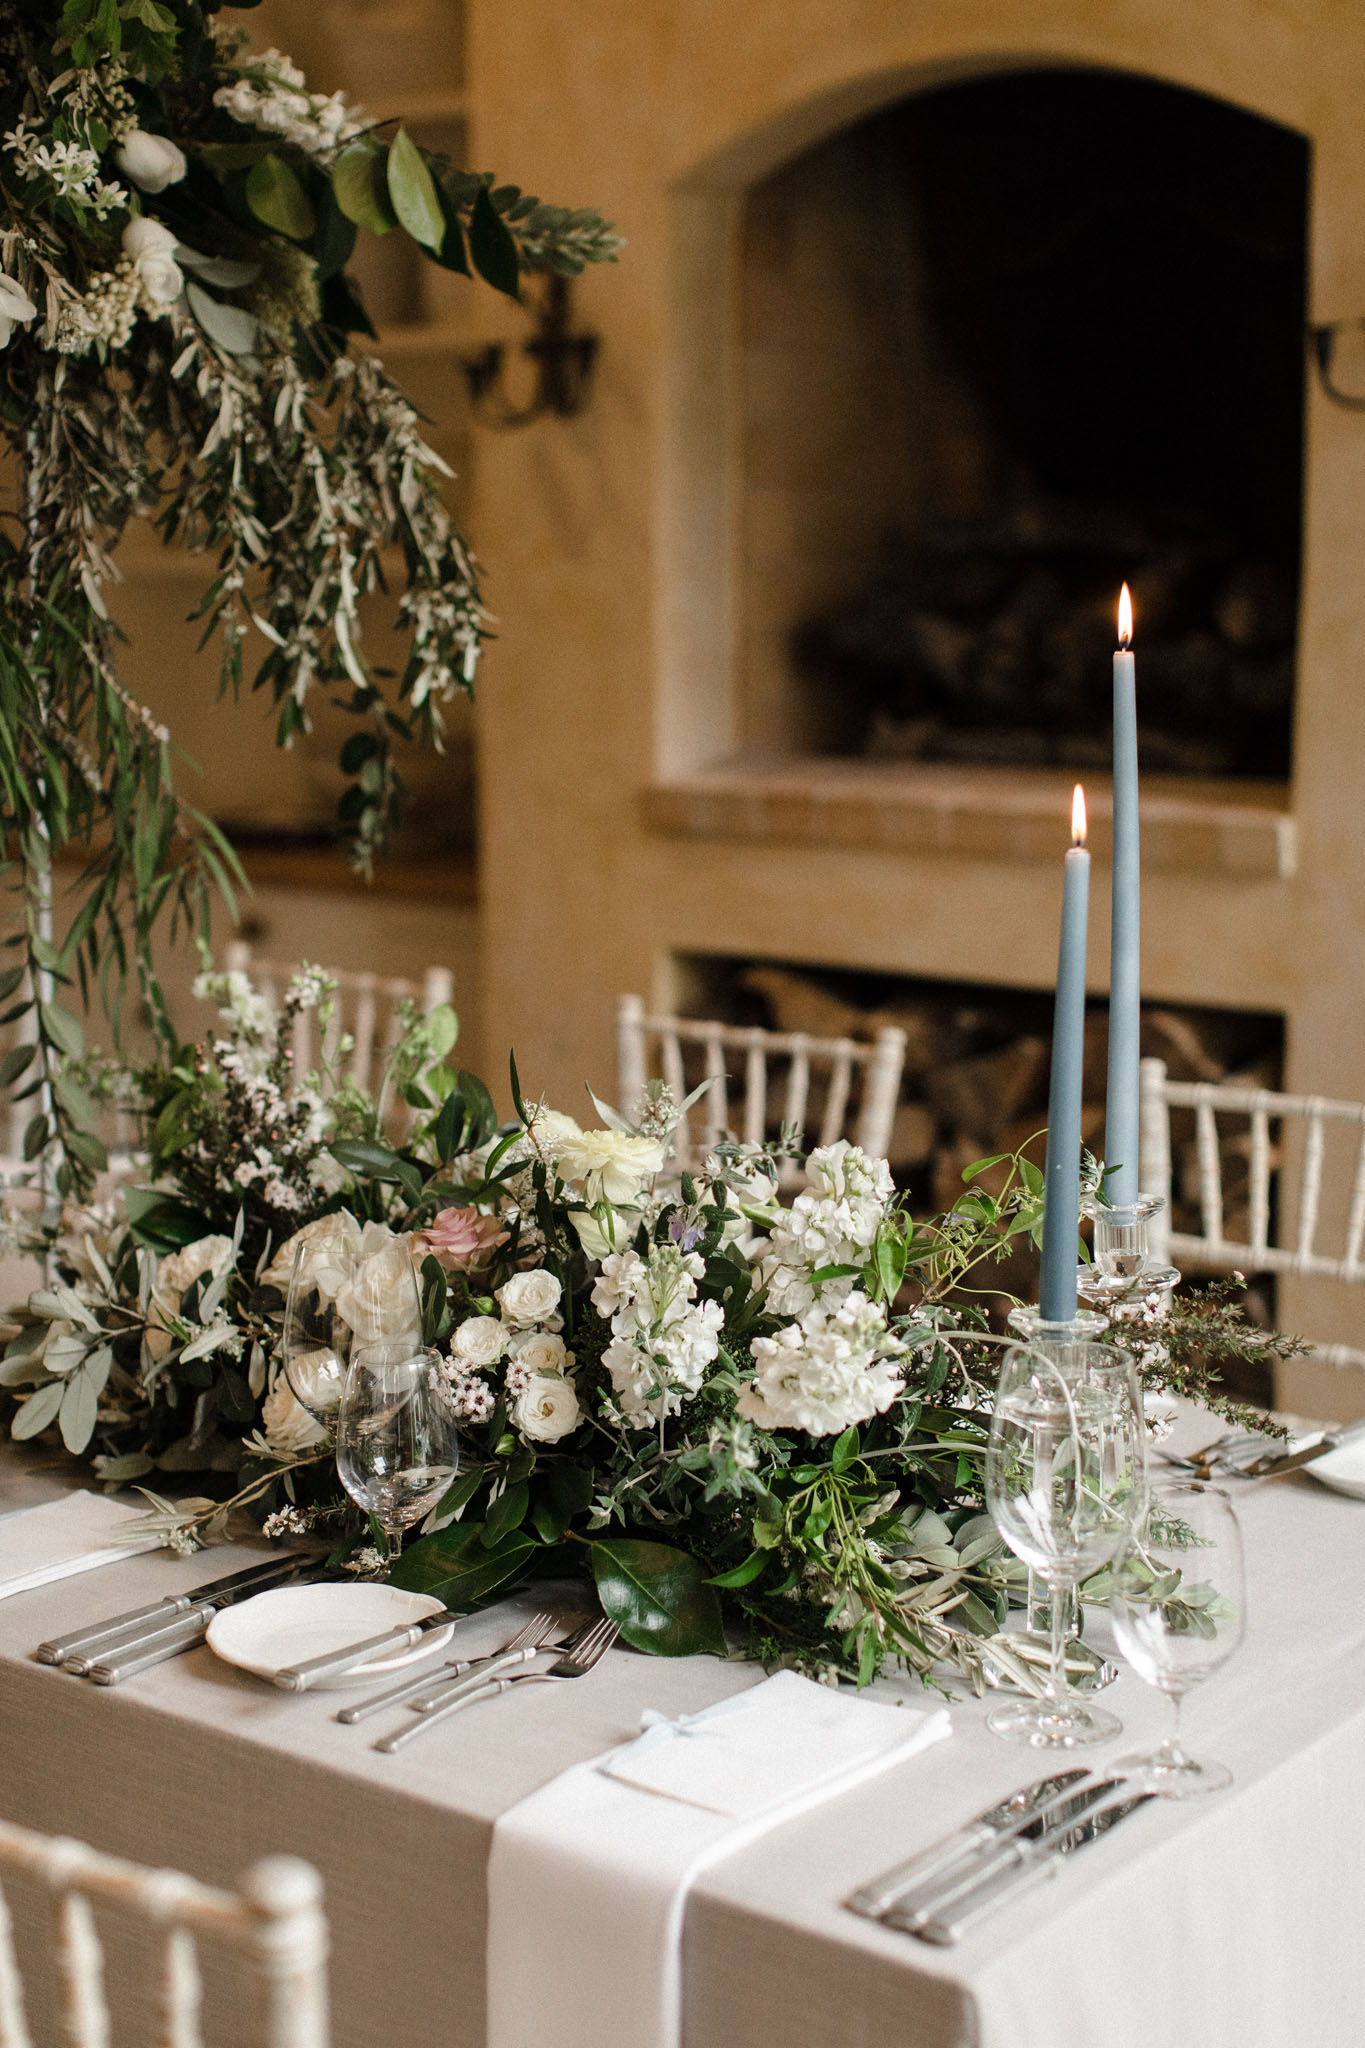 Melissa+Sean Capekidnappers Table Inspiration Candles Flowers 0203